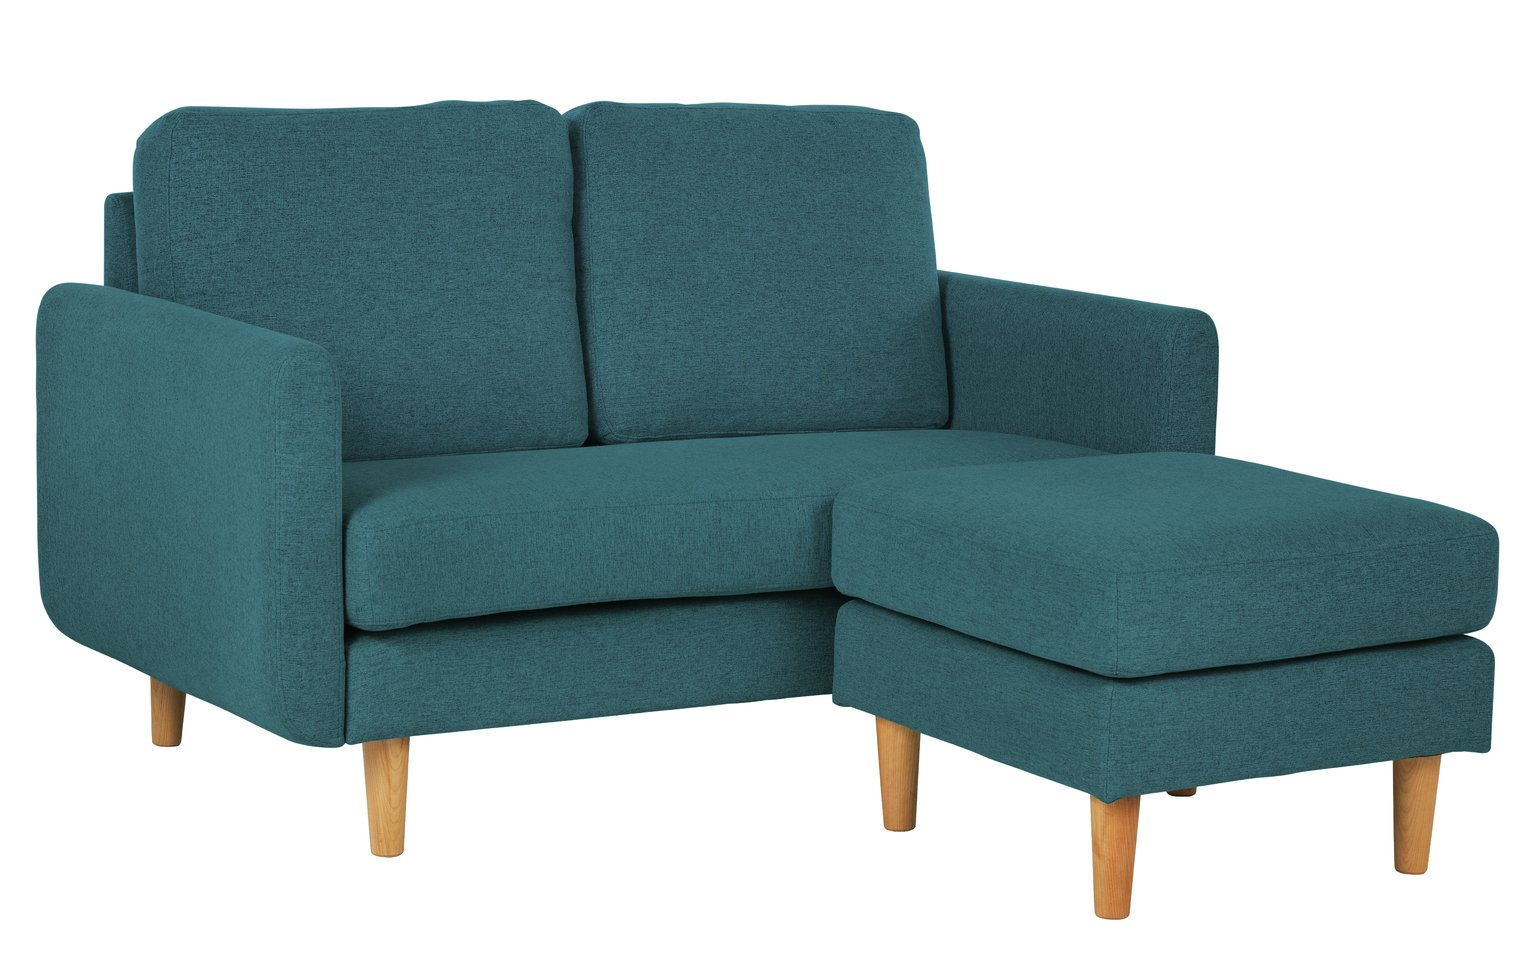 Habitat Remi 2 Seater Fabric Chaise in a Box - Teal